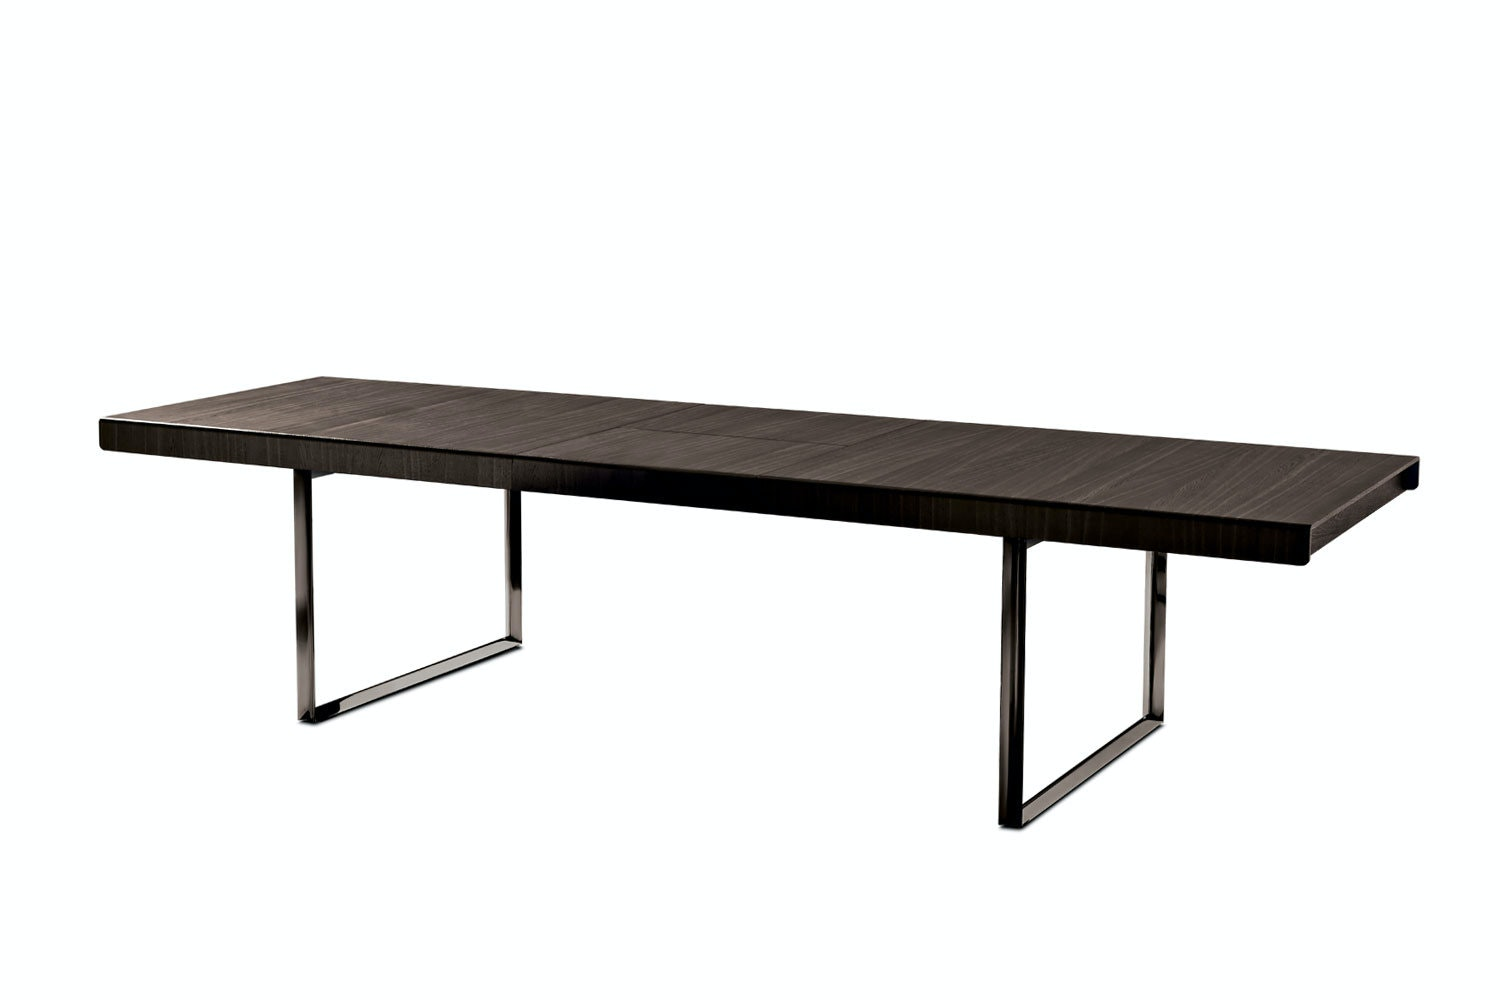 Athos '12 Extension Table by Paolo Piva for B&B Italia